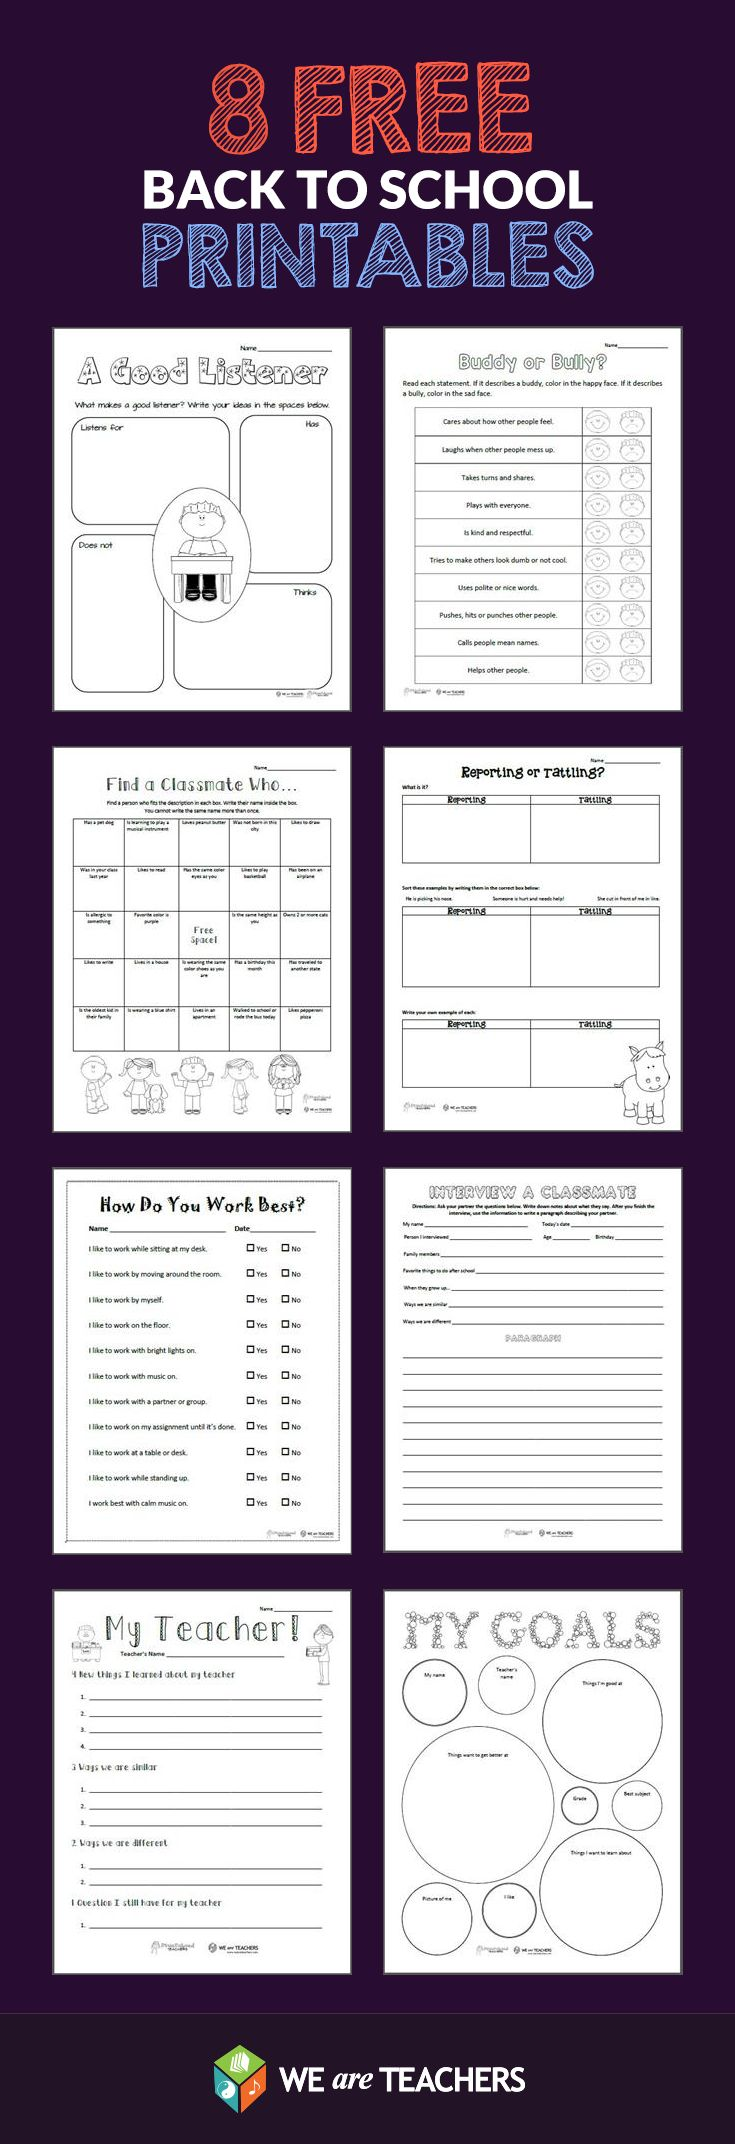 8 Back-to-School Printables from WeAreTeachers! Including: What Makes a Good Listener? Buddy or Bully? Classmate Scavenger Hunt, Goals Sheet, and More! #weareteachers